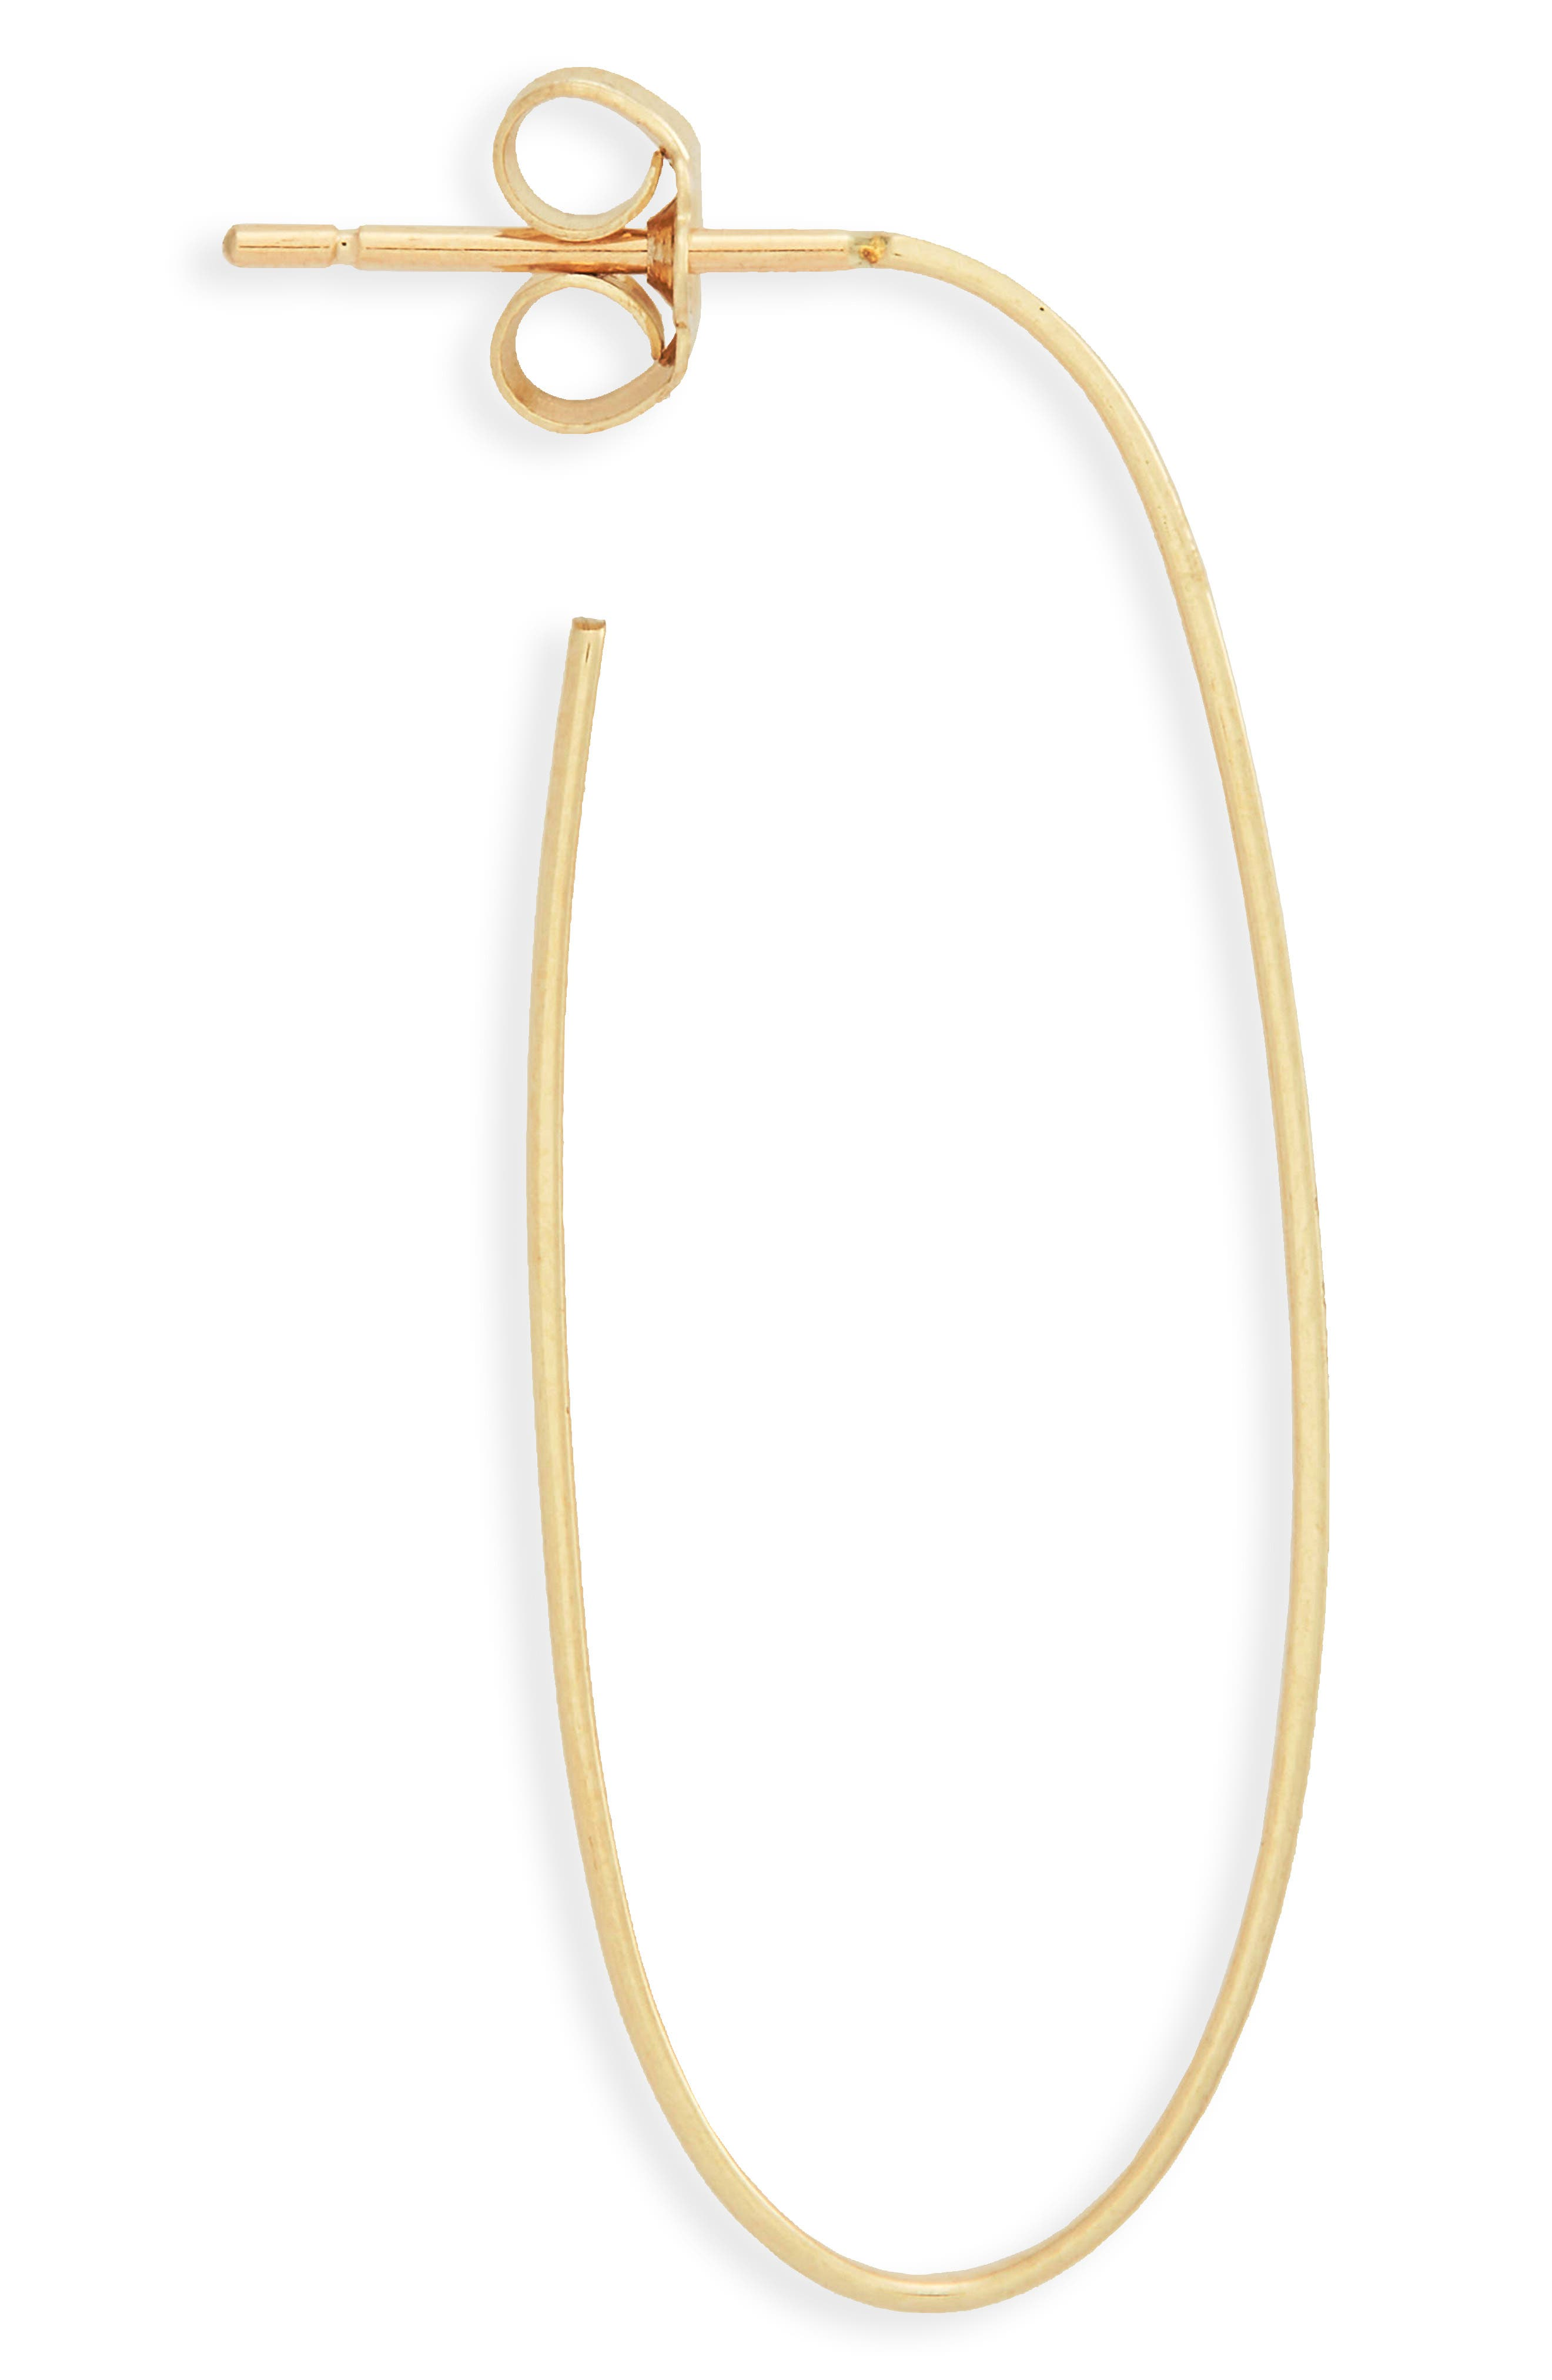 Flat Long Oval Hoop Earrings,                             Alternate thumbnail 4, color,                             Yellow Gold